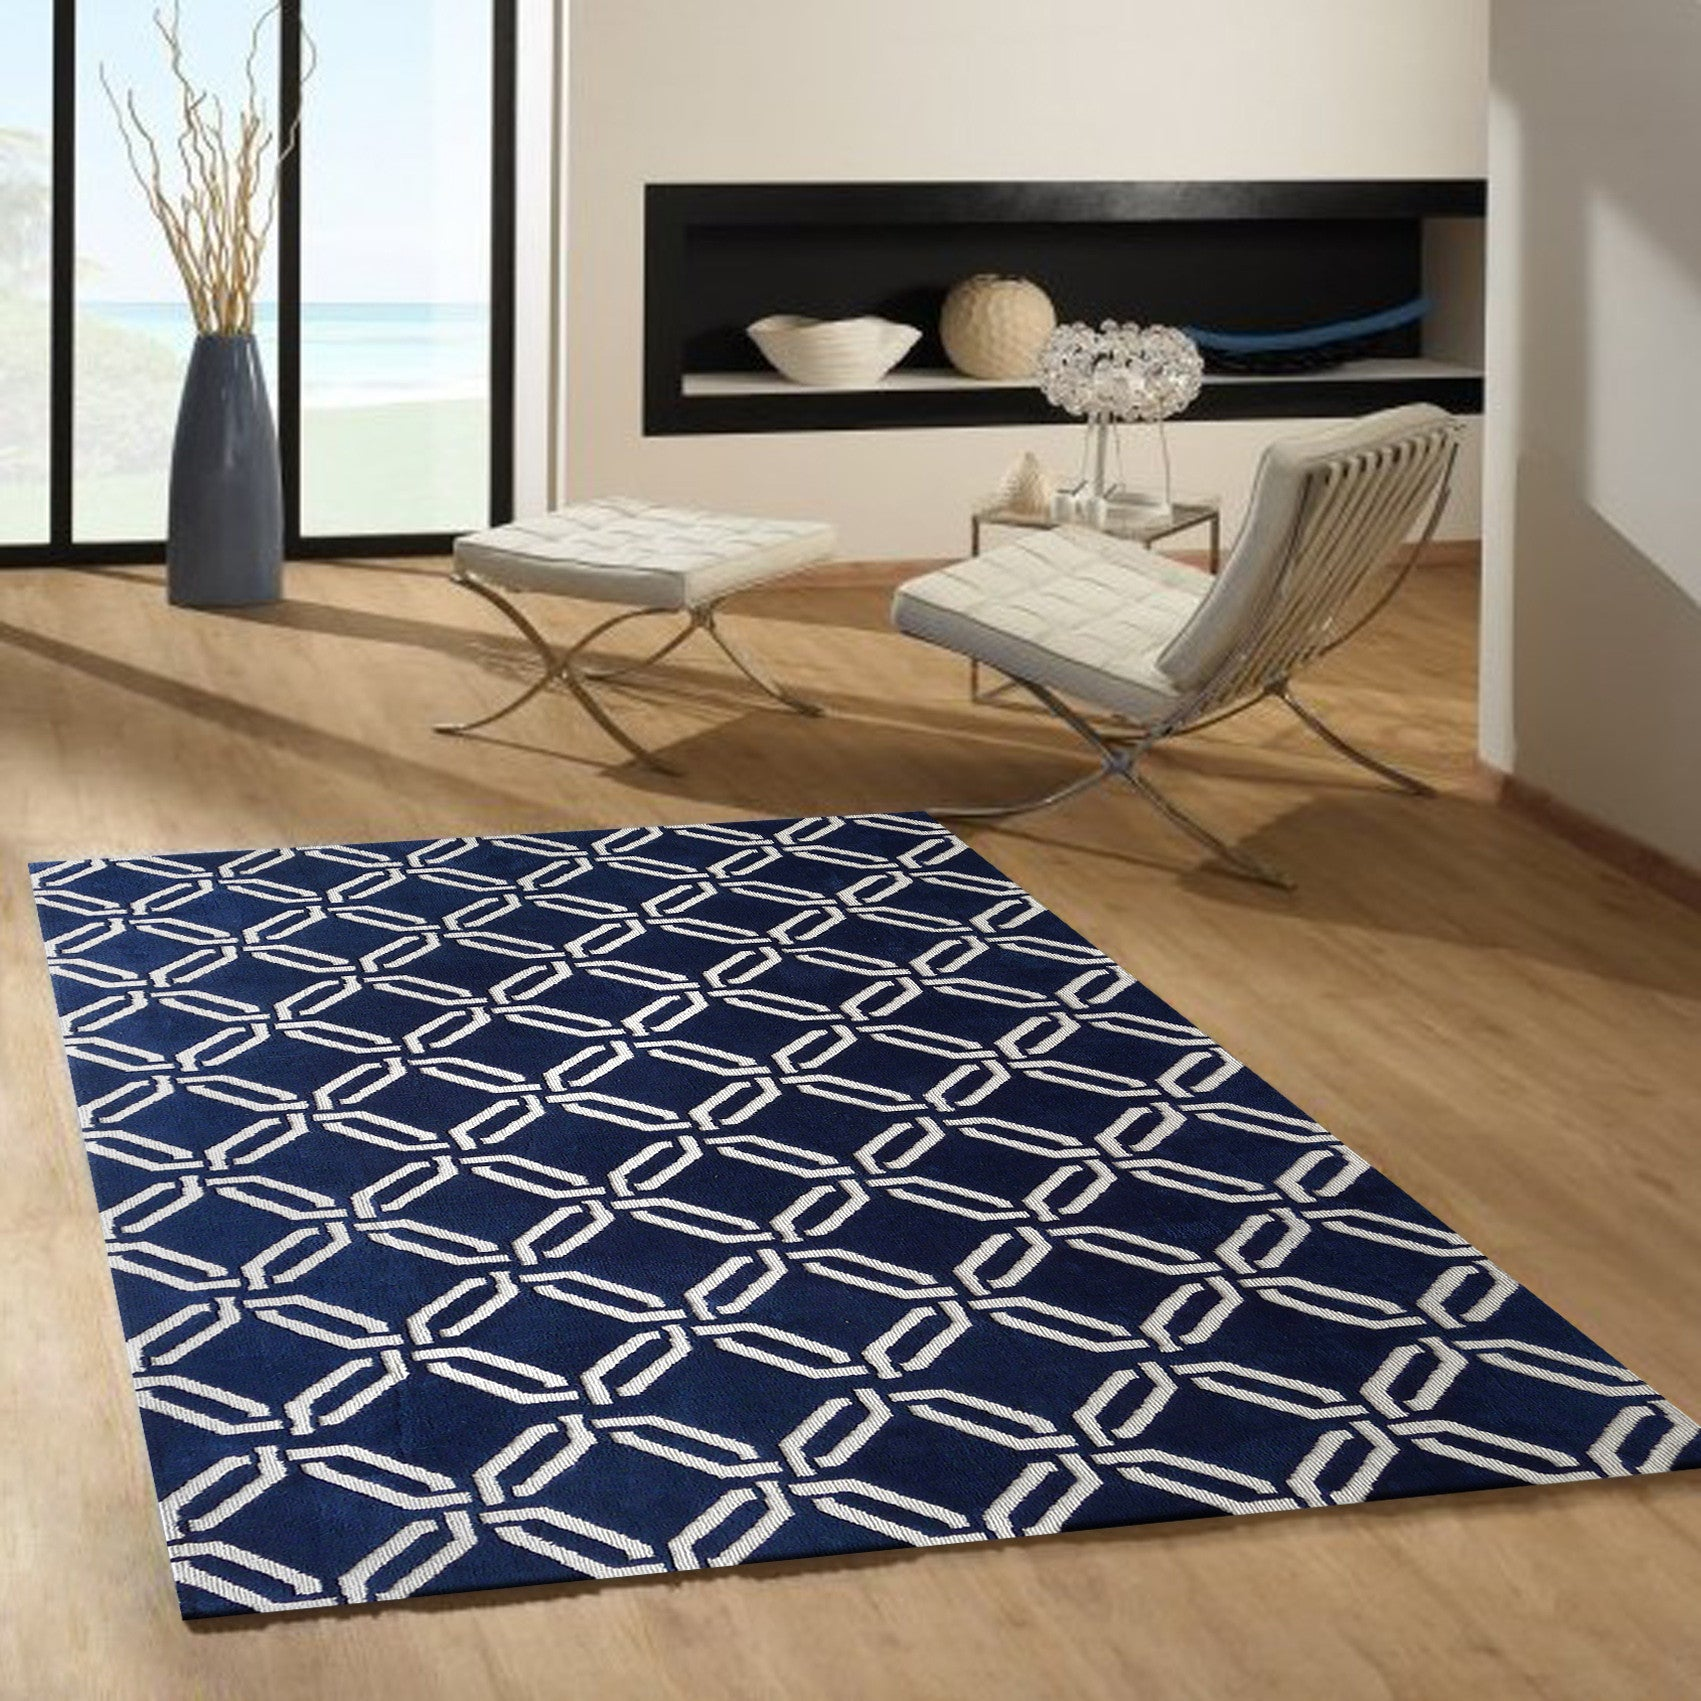 navy blue reviews evelyn pdp rugs rug joss main area